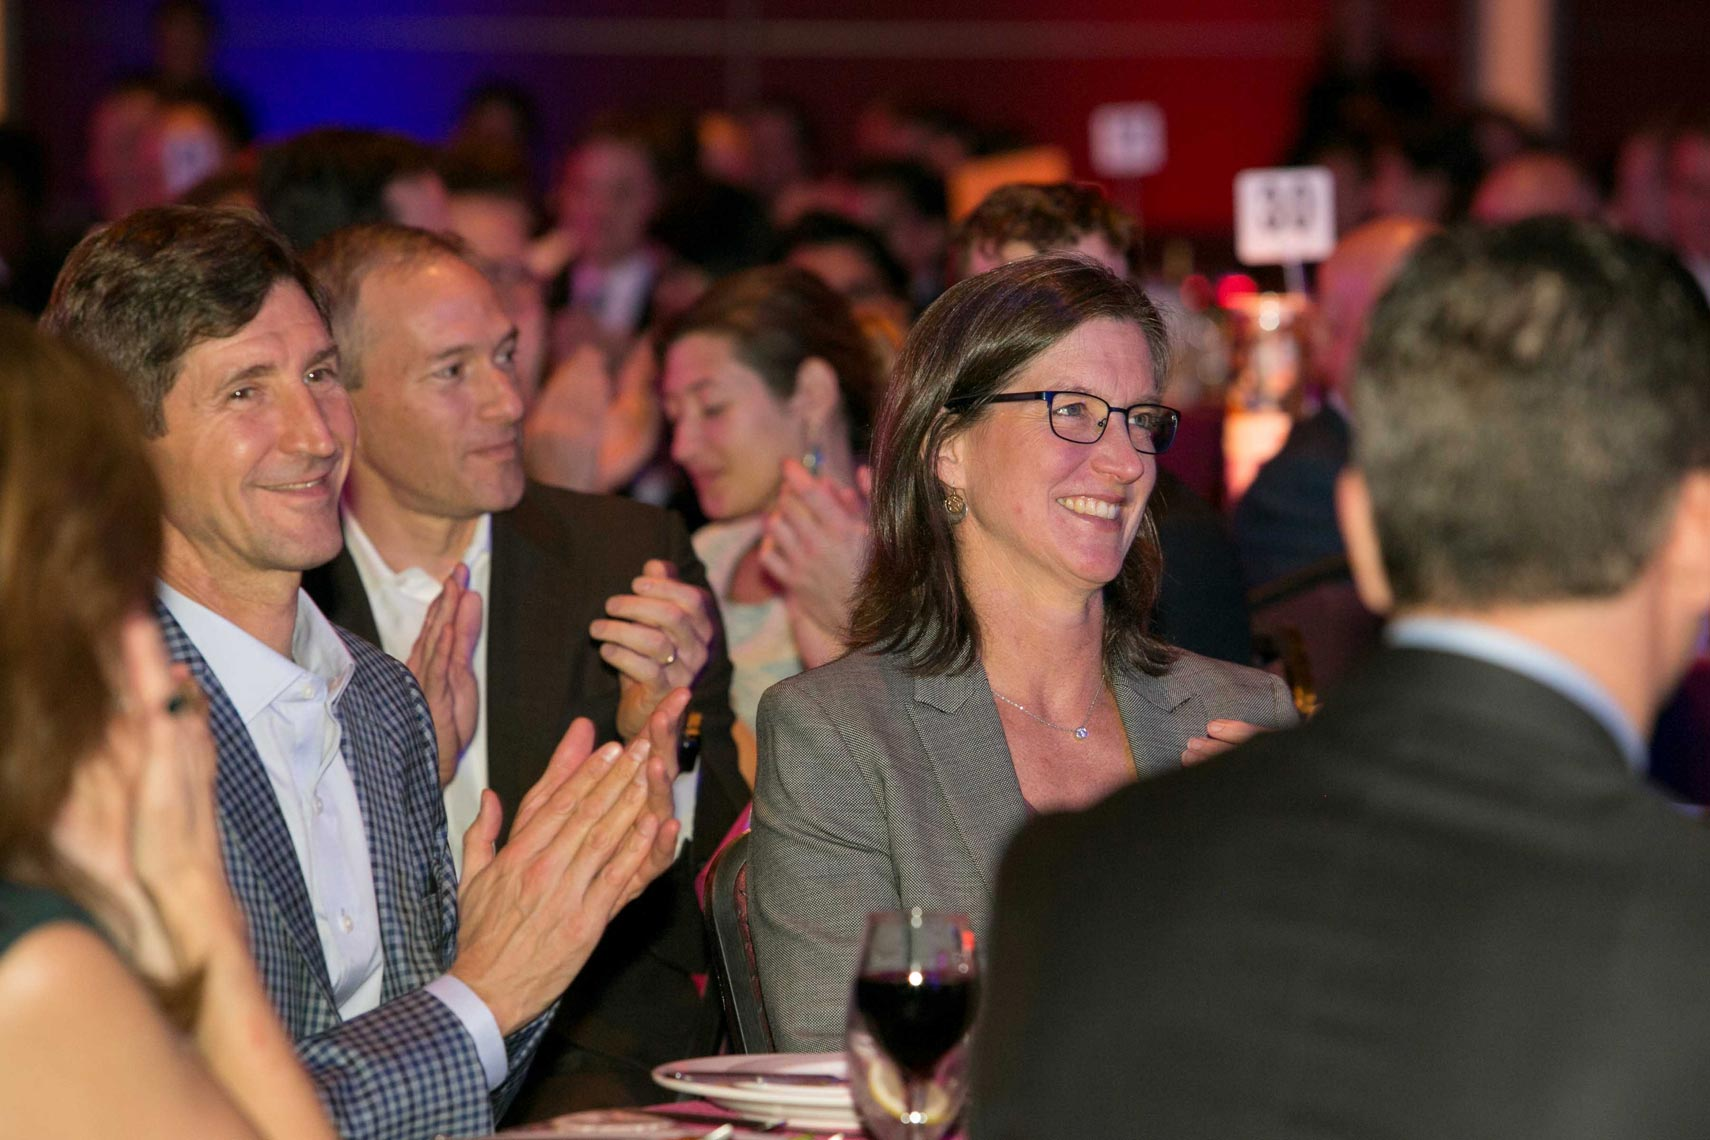 Happy Guests Applaud Winner at BuidFest Boston Auction